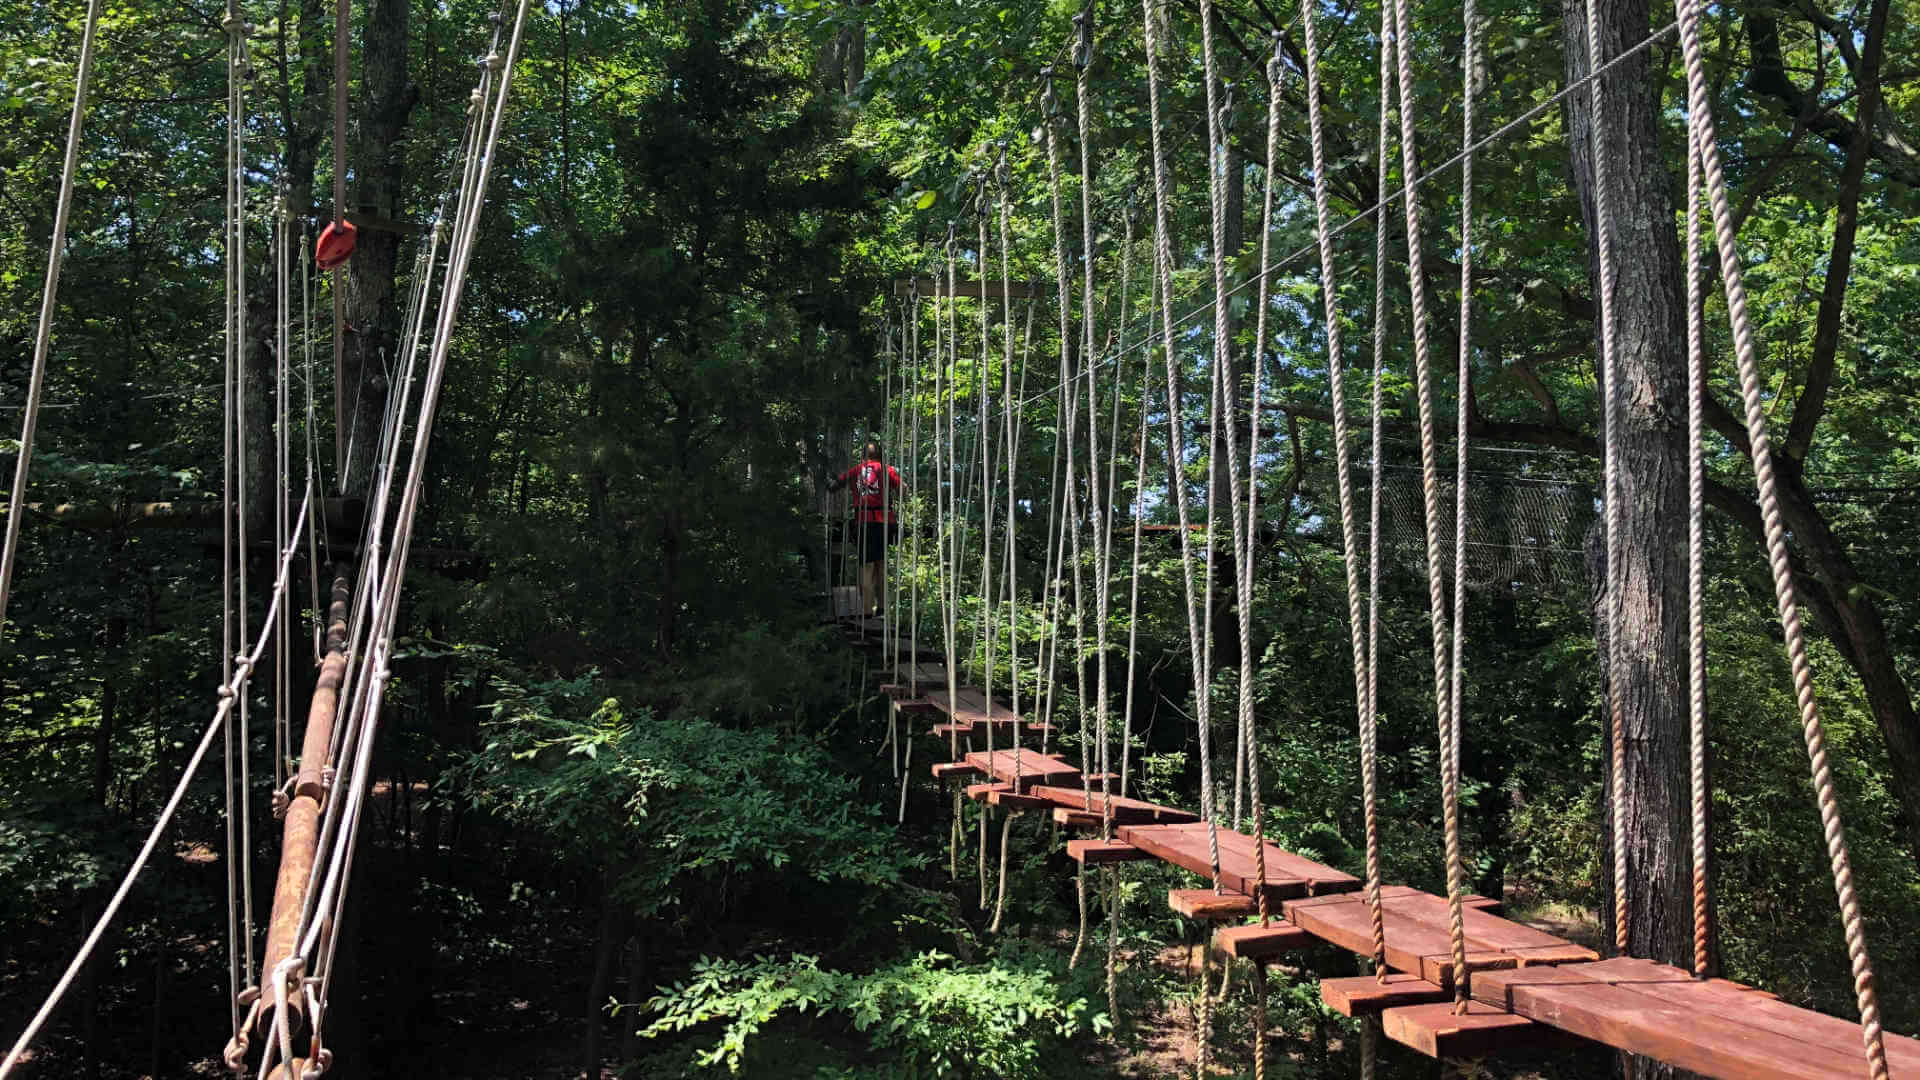 A section of the ropes course we visited during our staycation around Virginia.